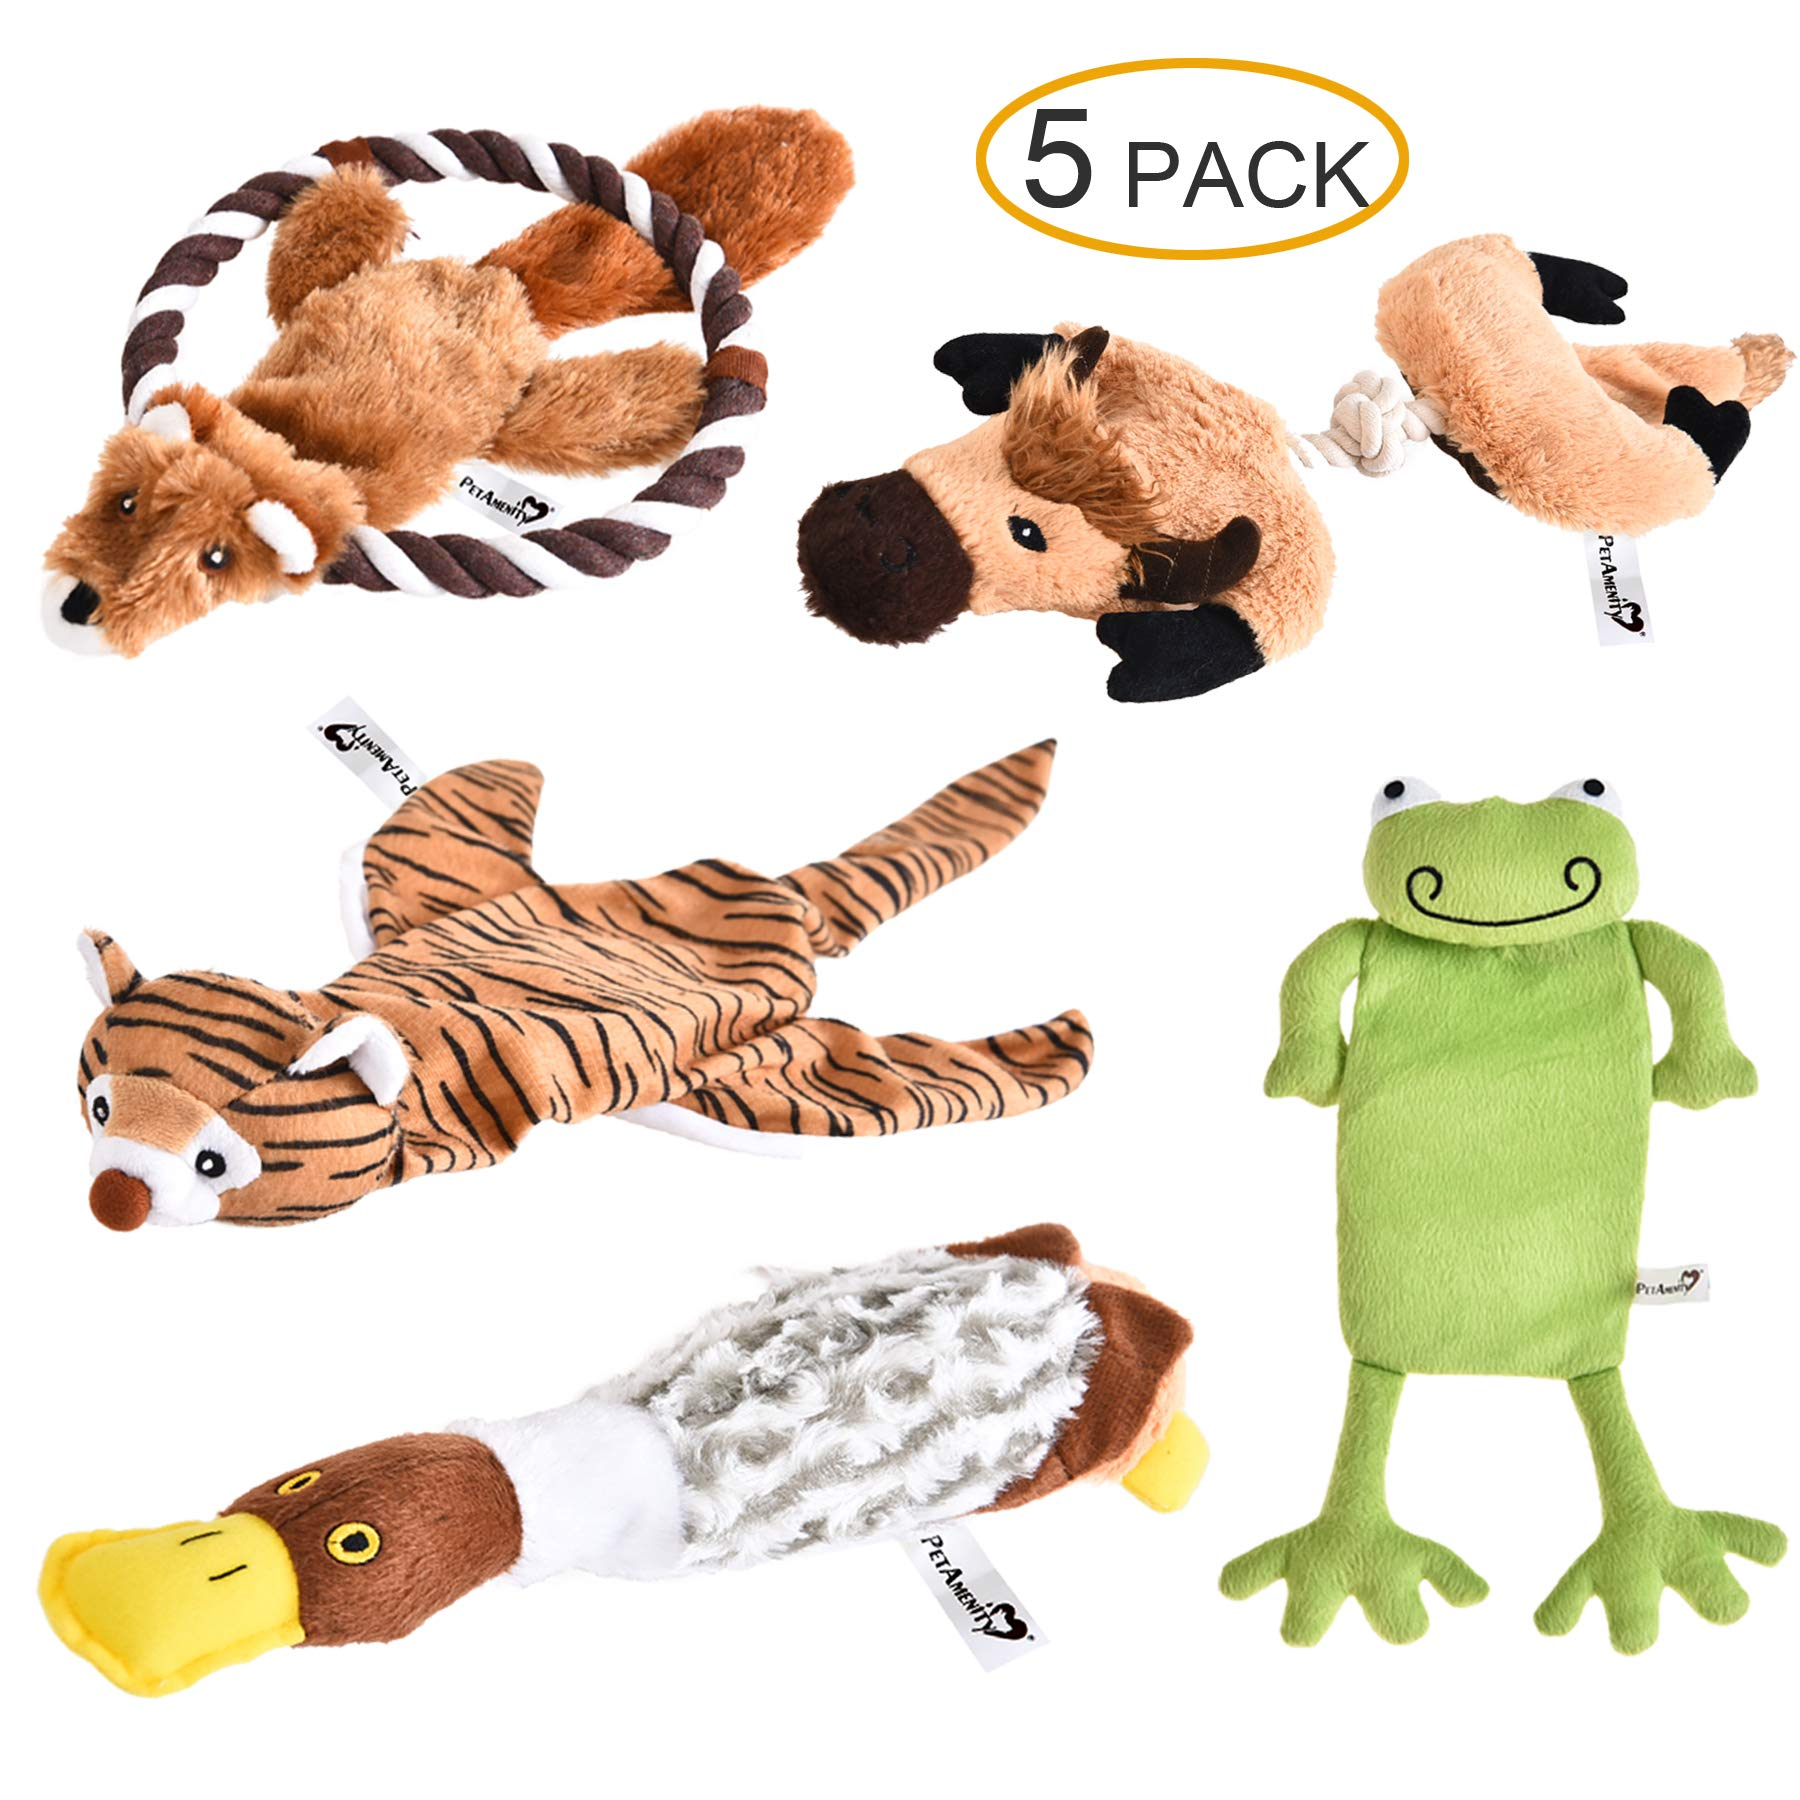 PetAmenity 5 Pack Premium Plush Dog Toys, Crinkle and Squeaky, Stuffingless and Low Stuffing, Irresistible and Tough Dog Chew Toys for Small, Medium, Large Dogs by PetAmenity